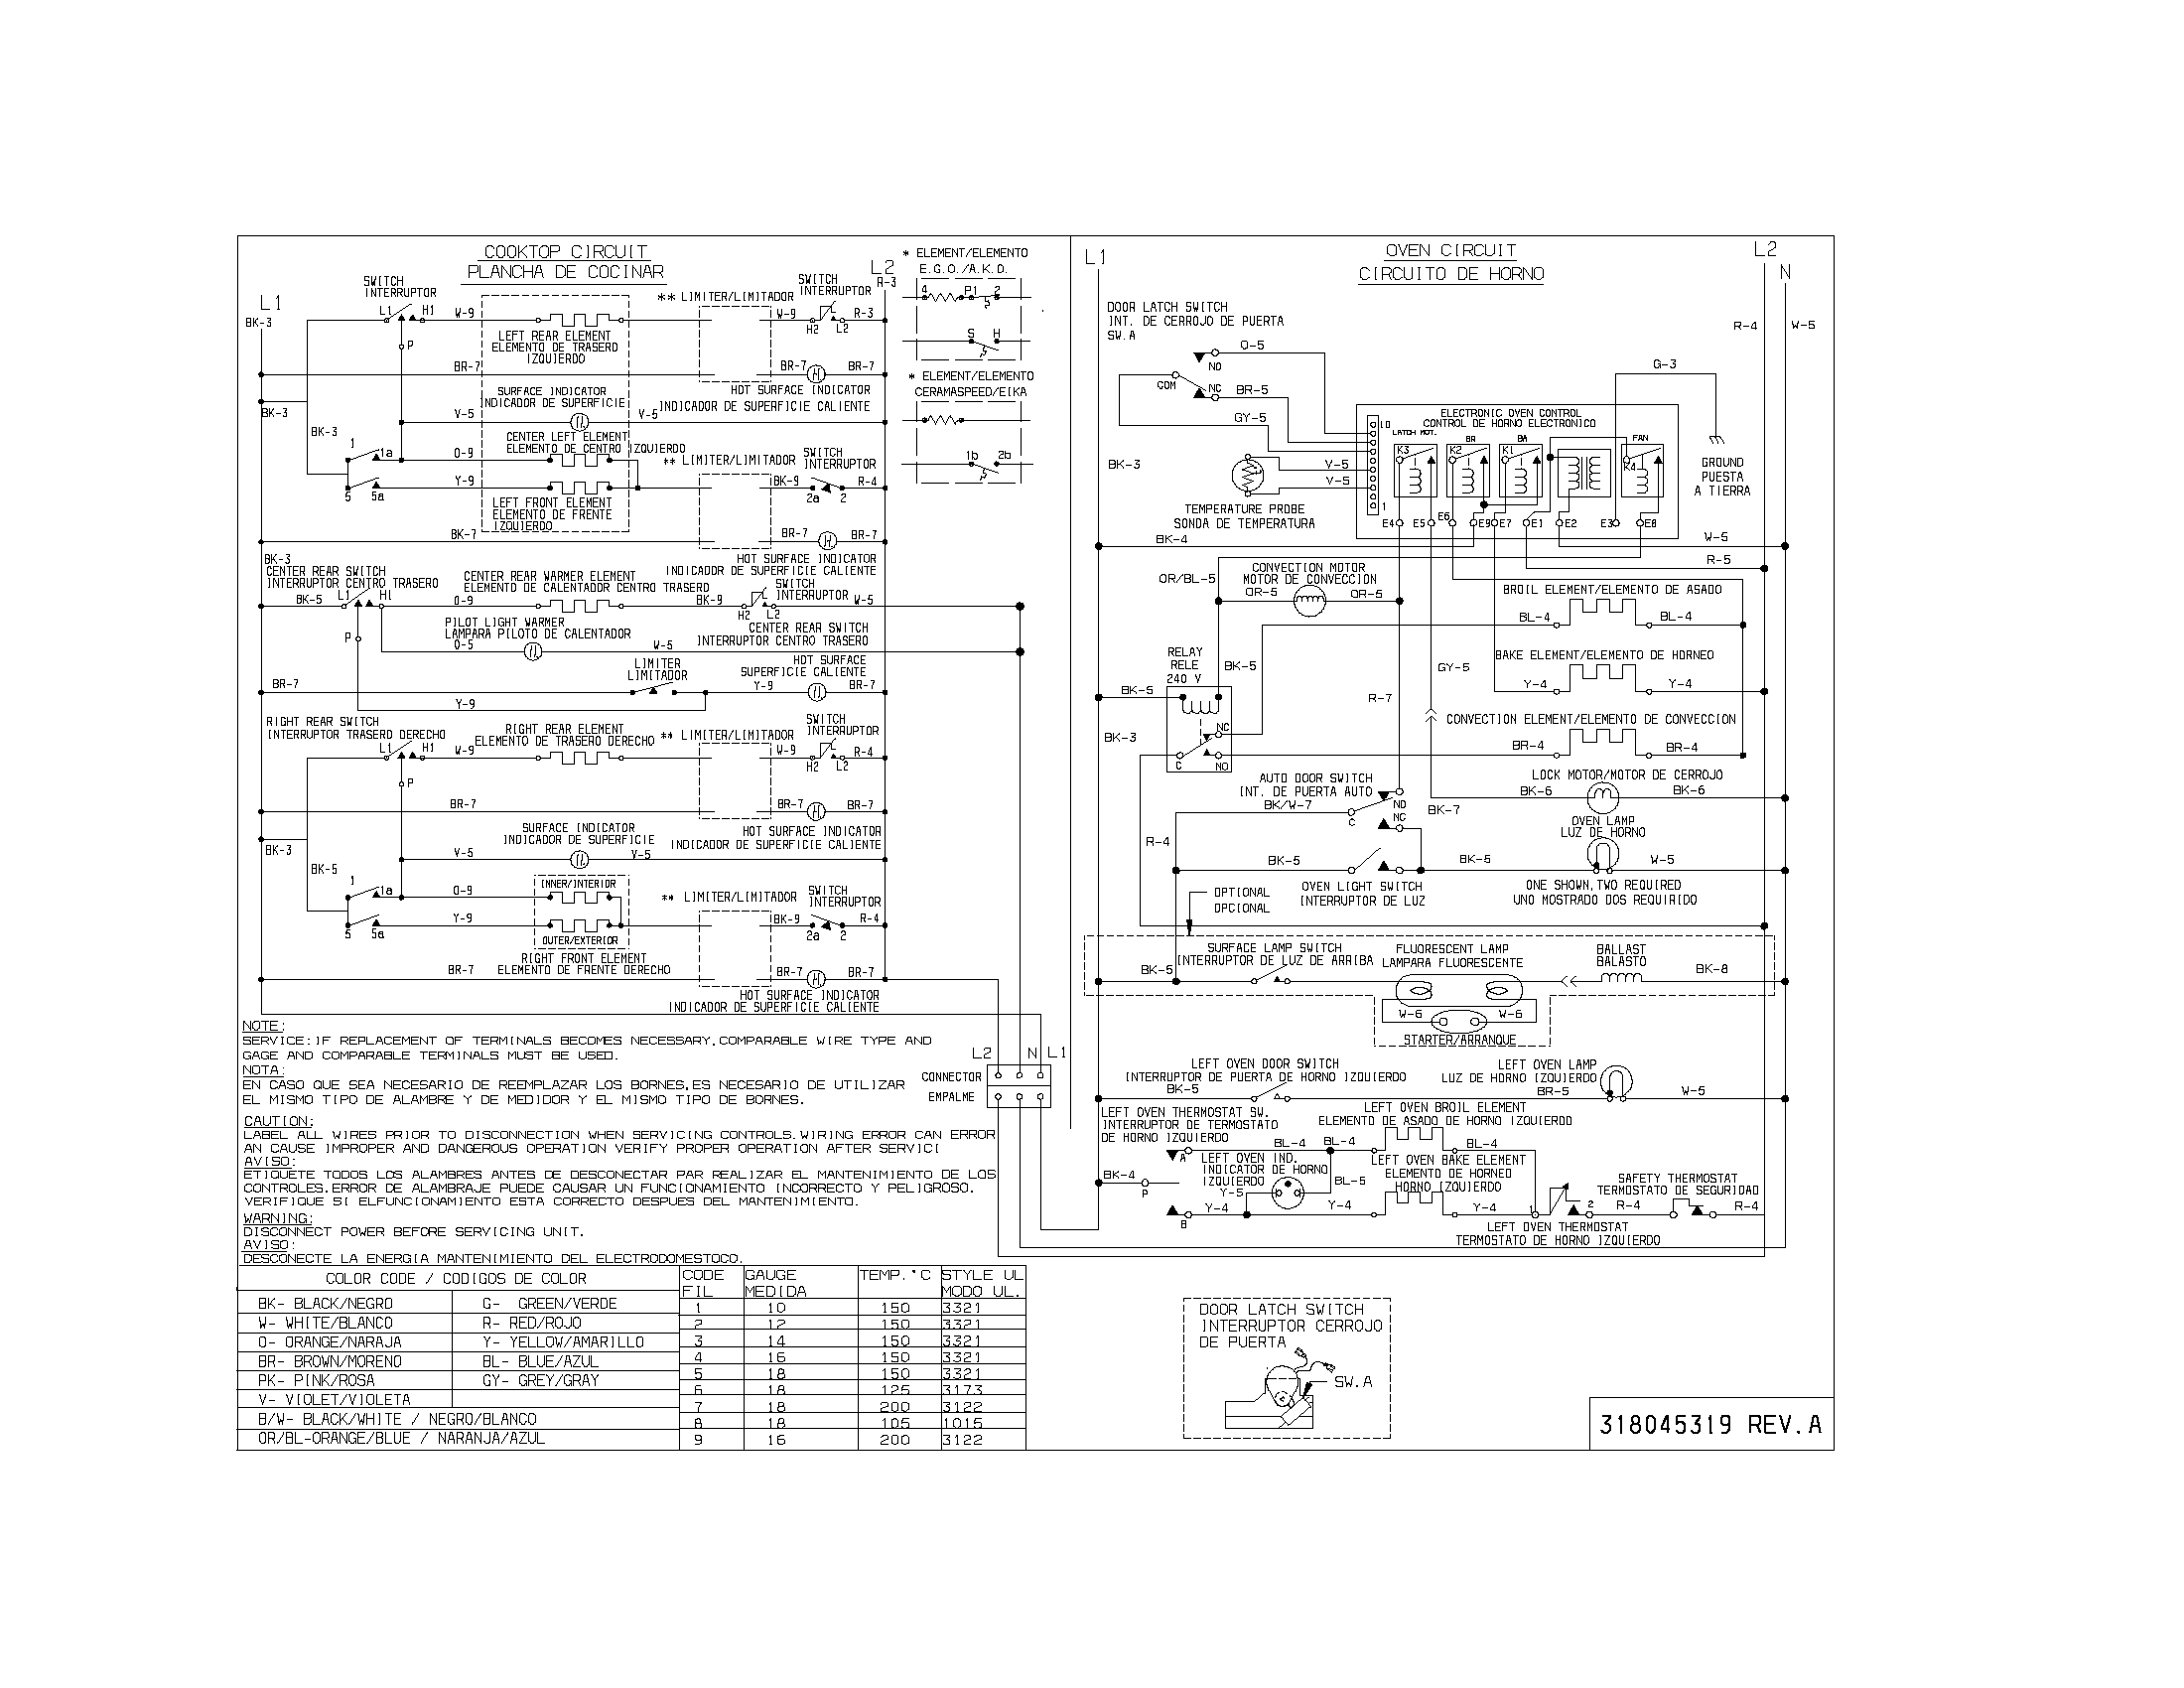 wiring diagram parts?resized665%2C5146ssld1 kic fridge thermostat wiring diagram efcaviation com kic fridge thermostat wiring diagram at gsmportal.co